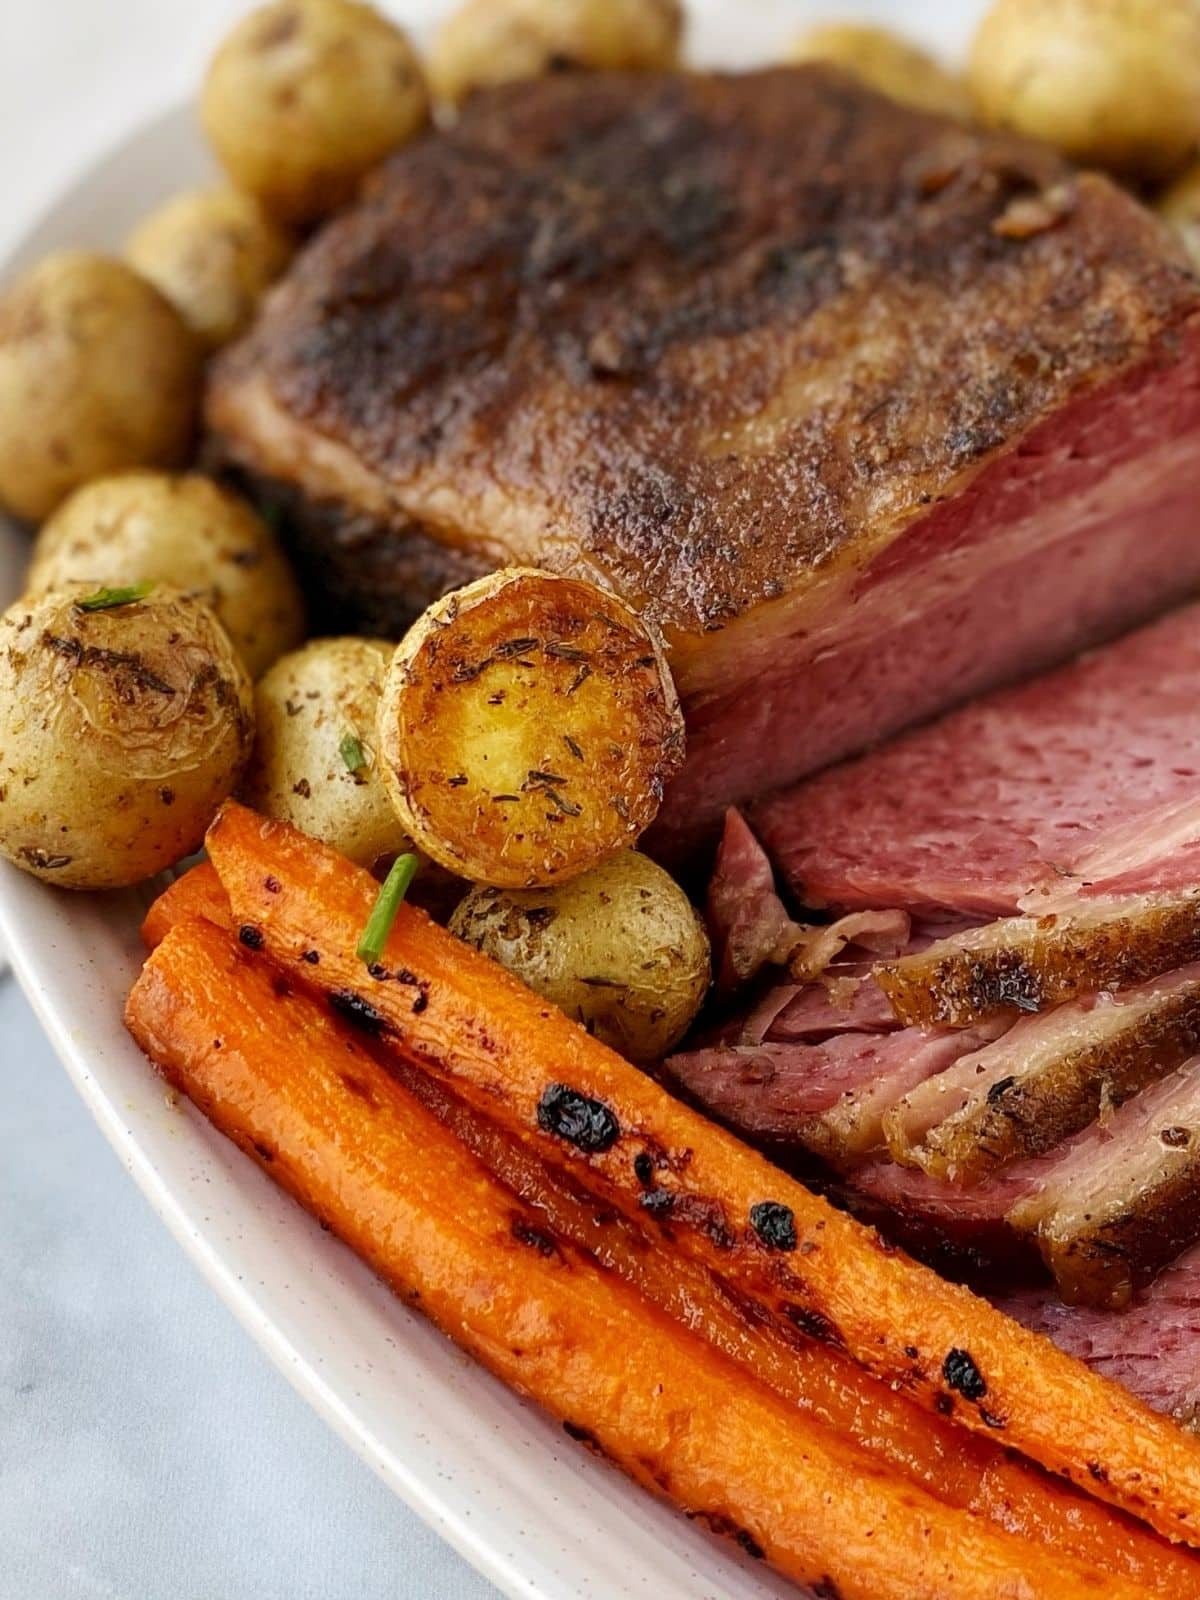 potatoes on a platter with corned beef and carrots